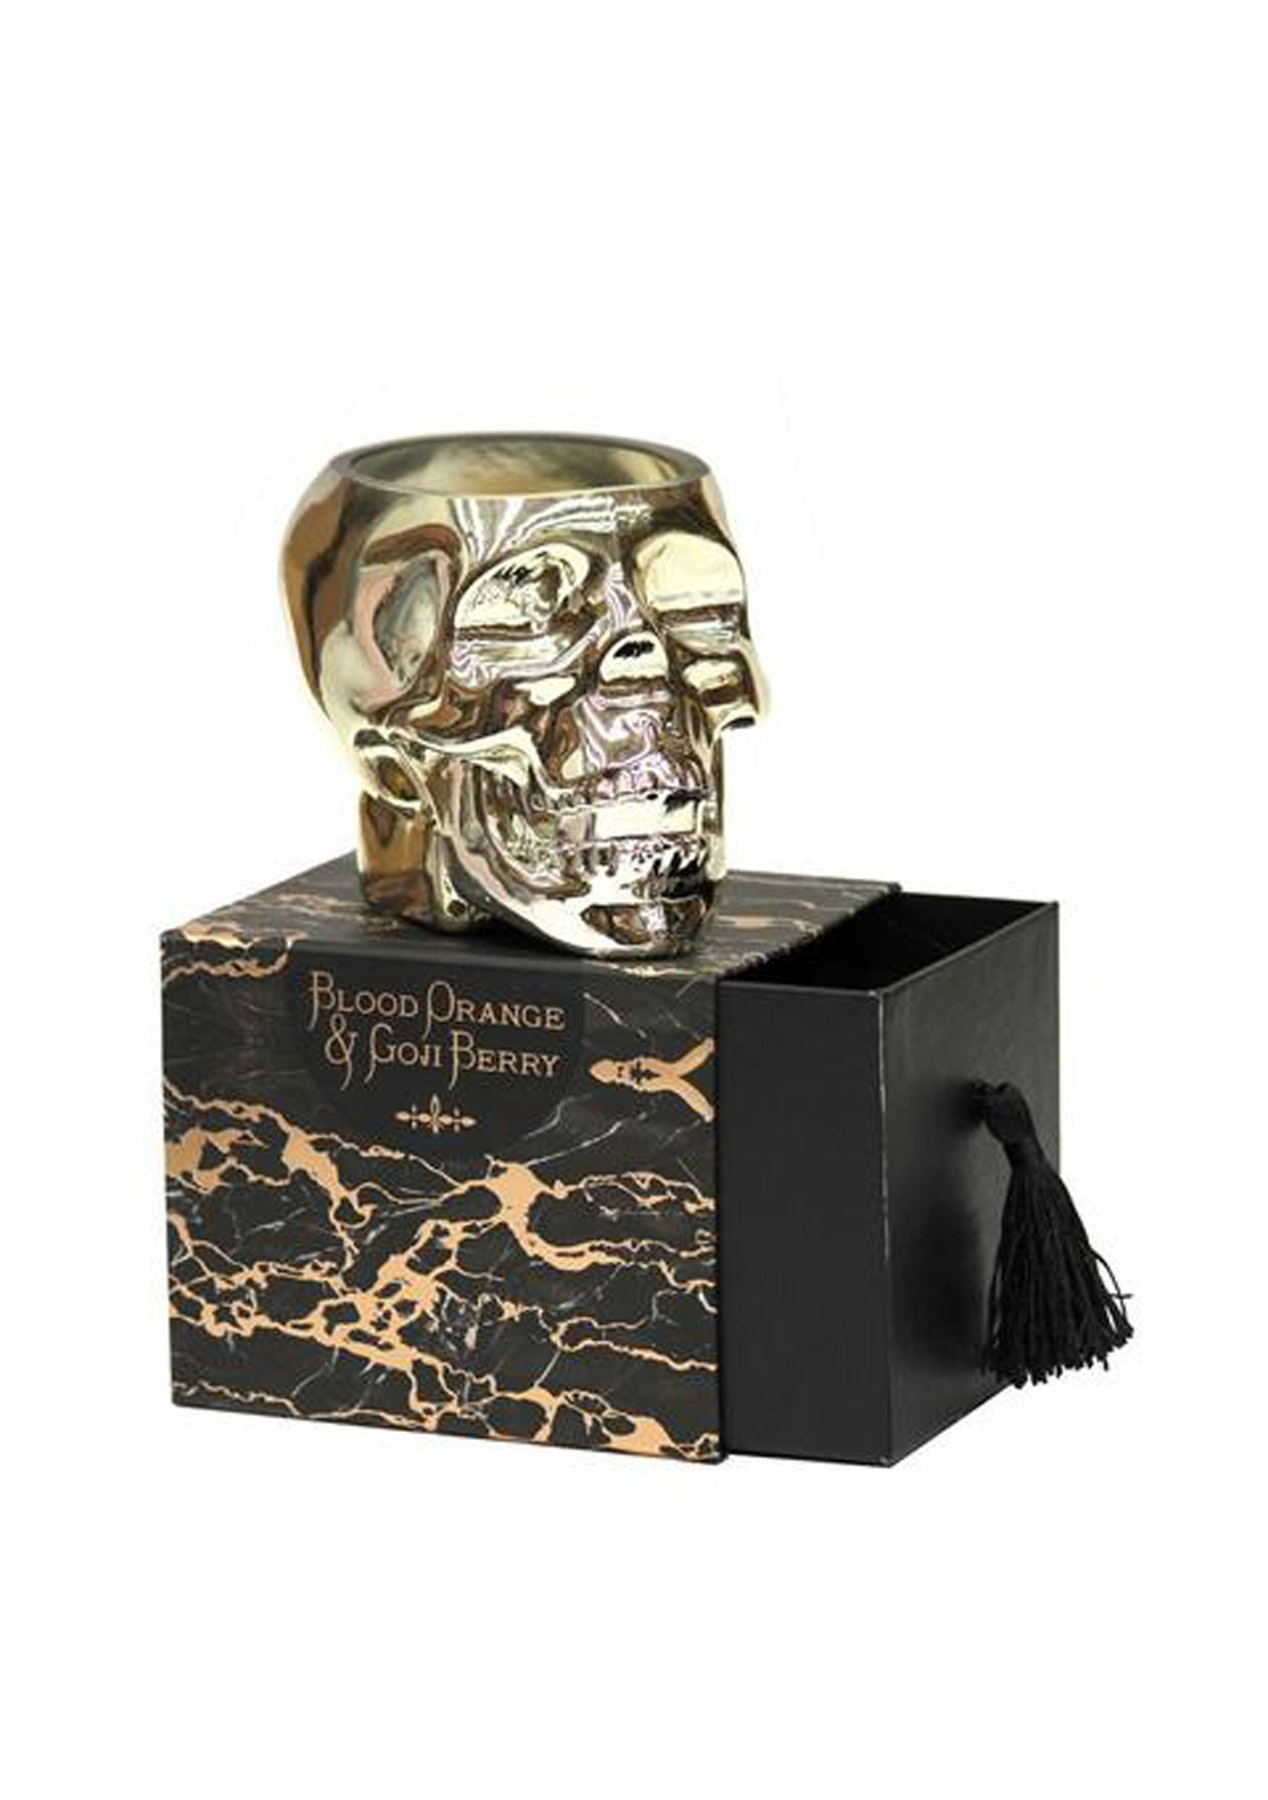 Me & My Trend - Gold Skull Orange and Goji Berry Candle